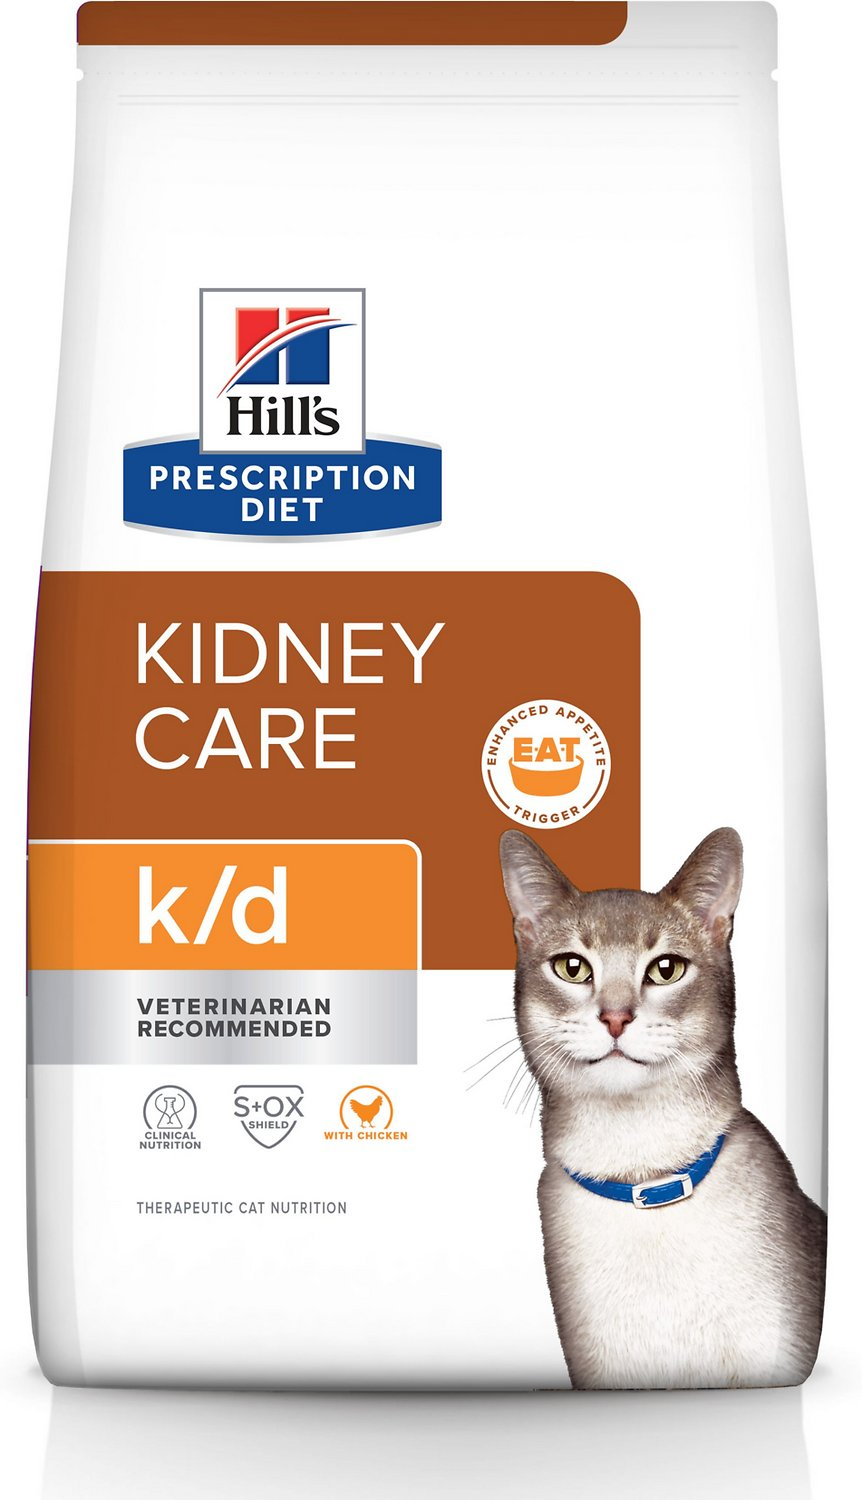 Hills Prescription Diet Kd Kidney Care With Chicken Dry Cat Food